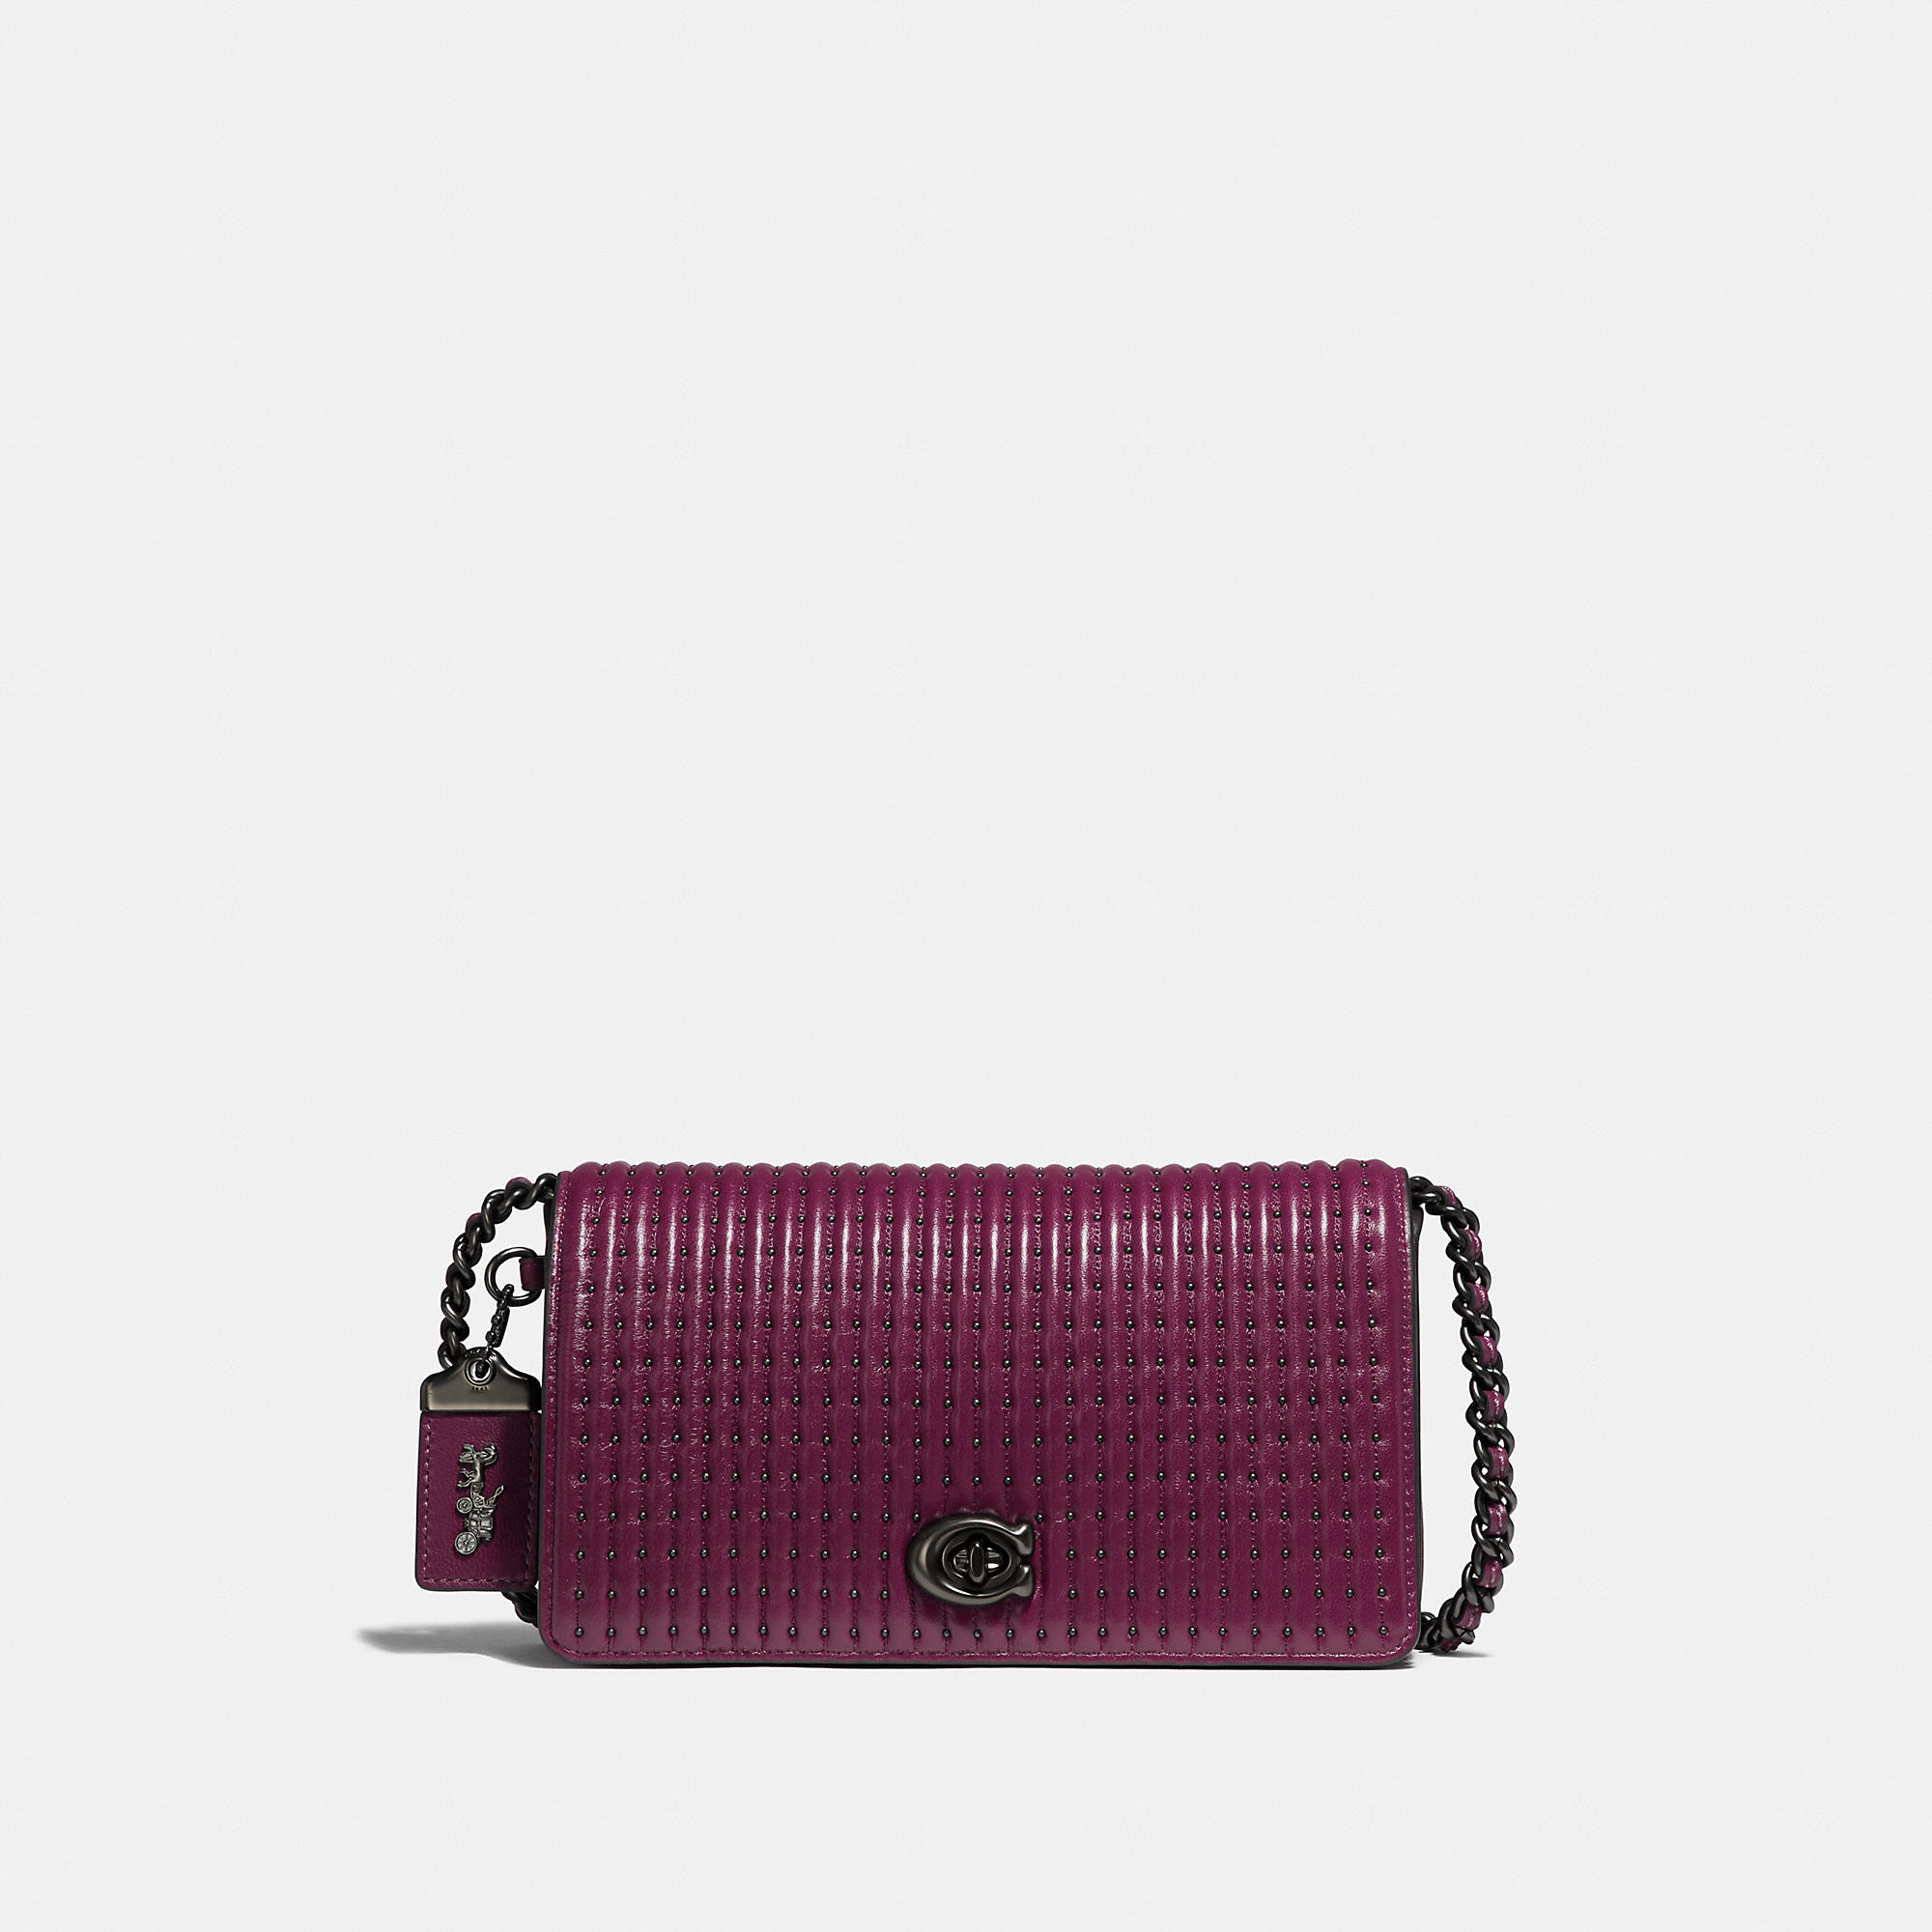 0bda8019153bb Coach Dinky With Quilting And Rivets In Dark Berry Pewter